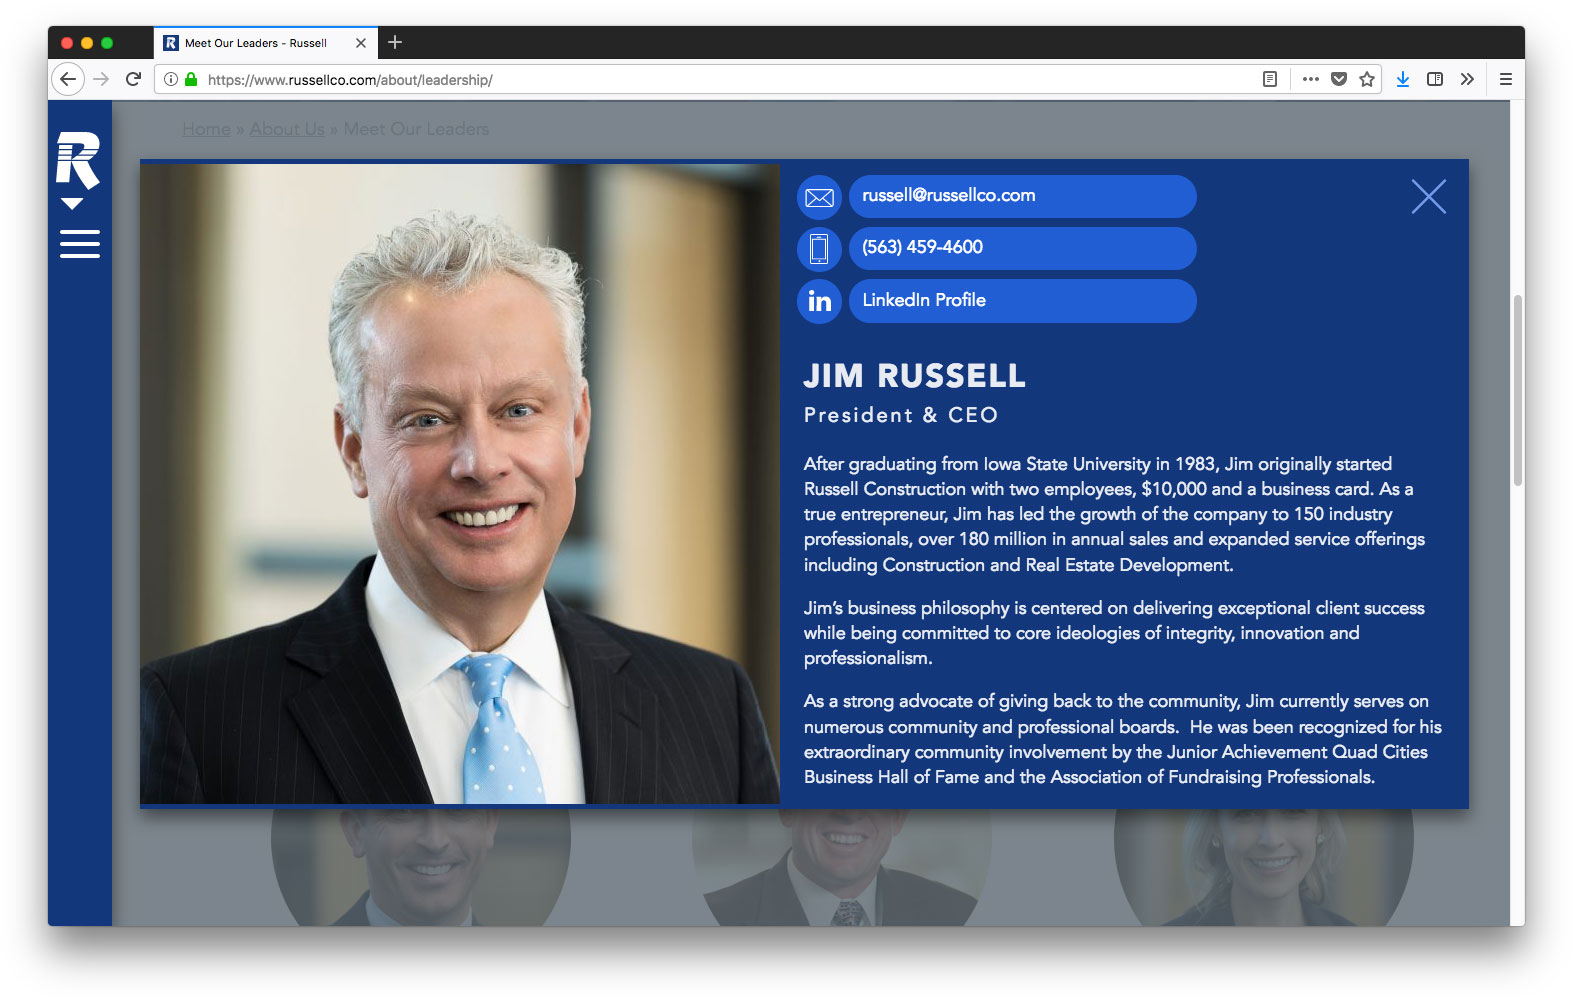 Screenshot of Russell leadership page with Jim Russell